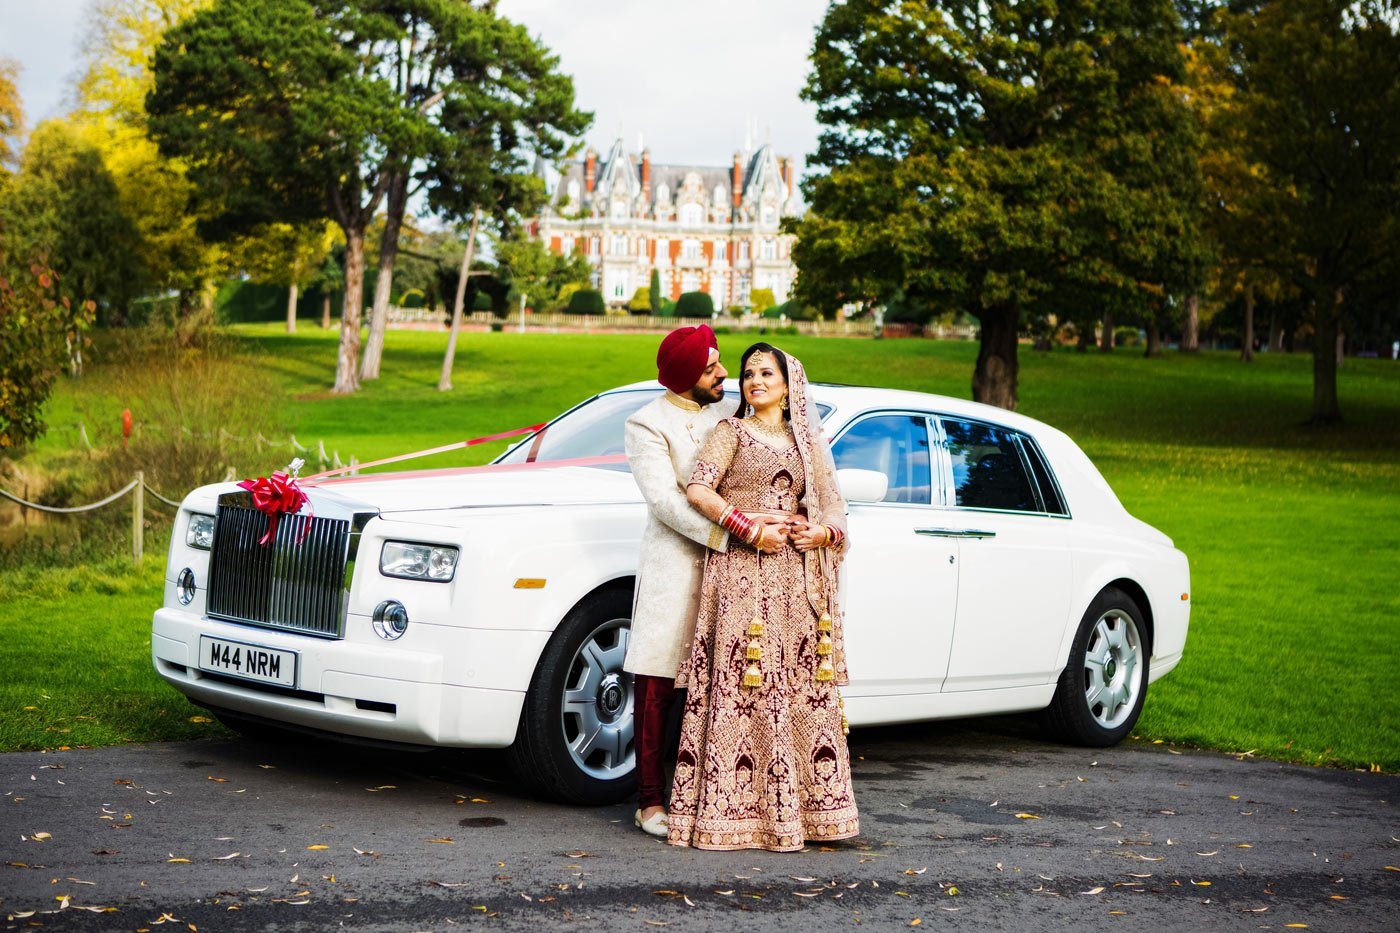 Indian Wedding Photography & Videography at Chateau Impney // Bavan & Kieran